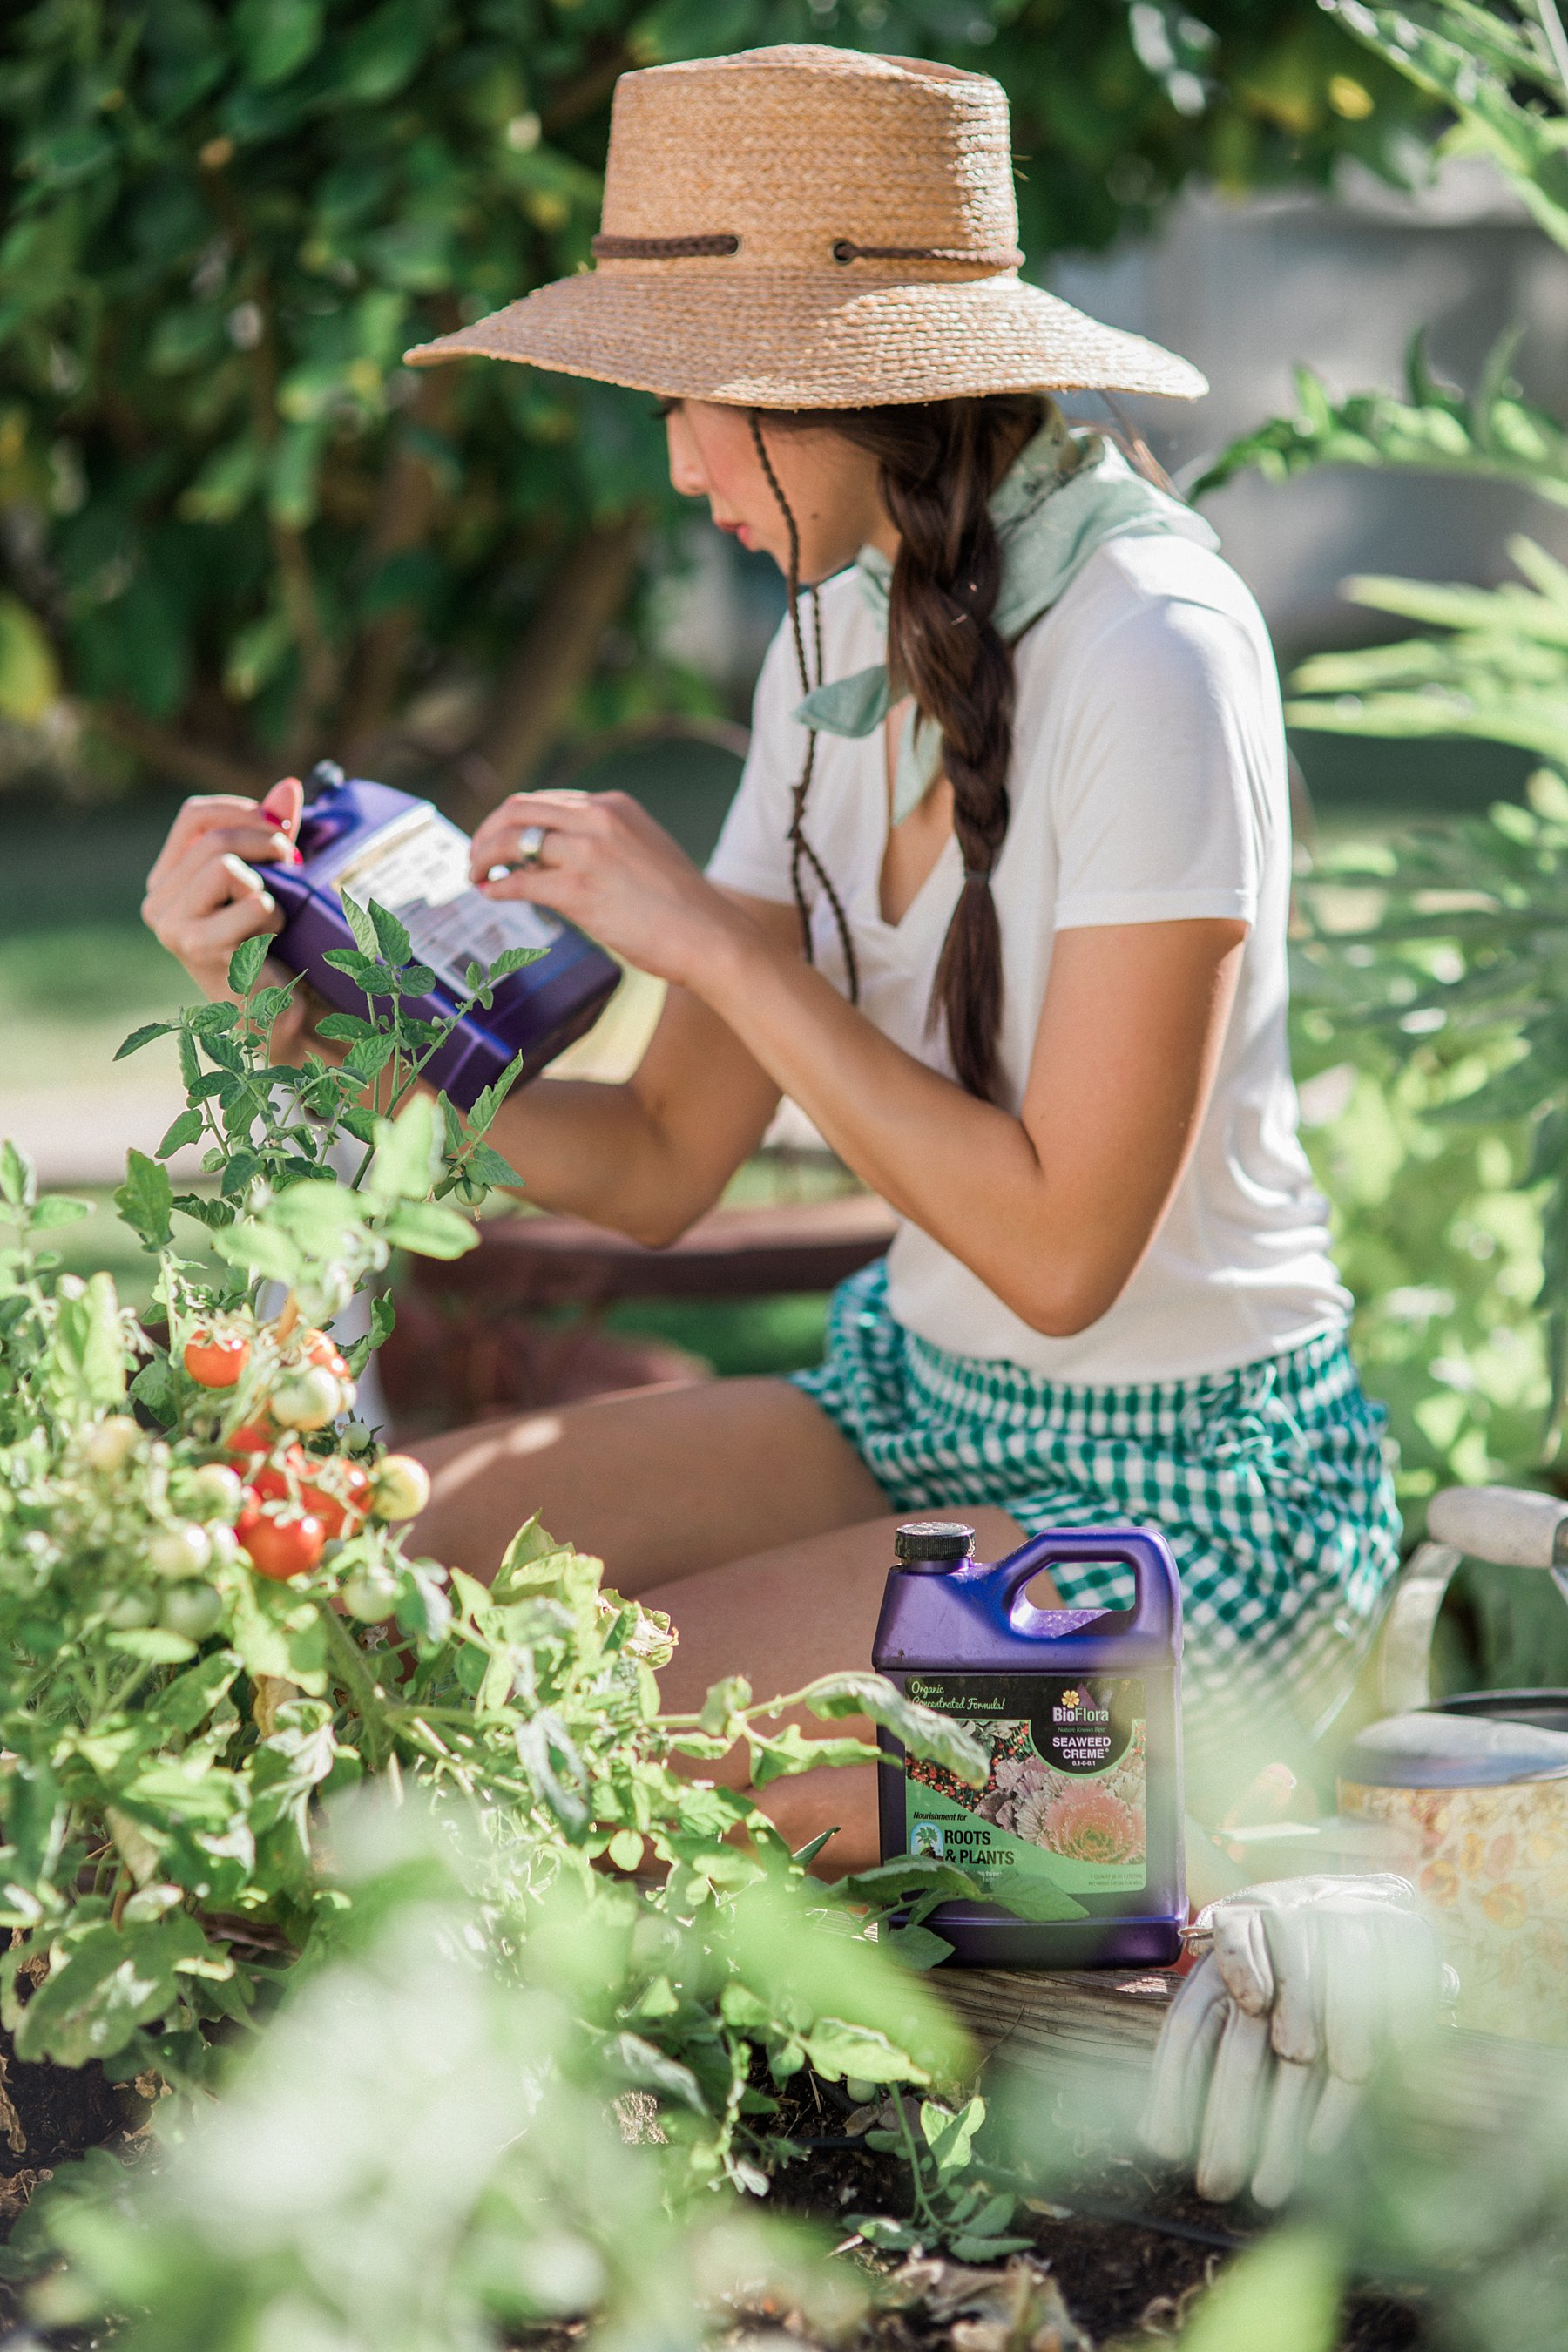 In the backyard garden with lifestyle blogger home and garden lover blogger: With BioFlora organic fertilization for gardens and shrubs and trees a review // collecting tomatoes